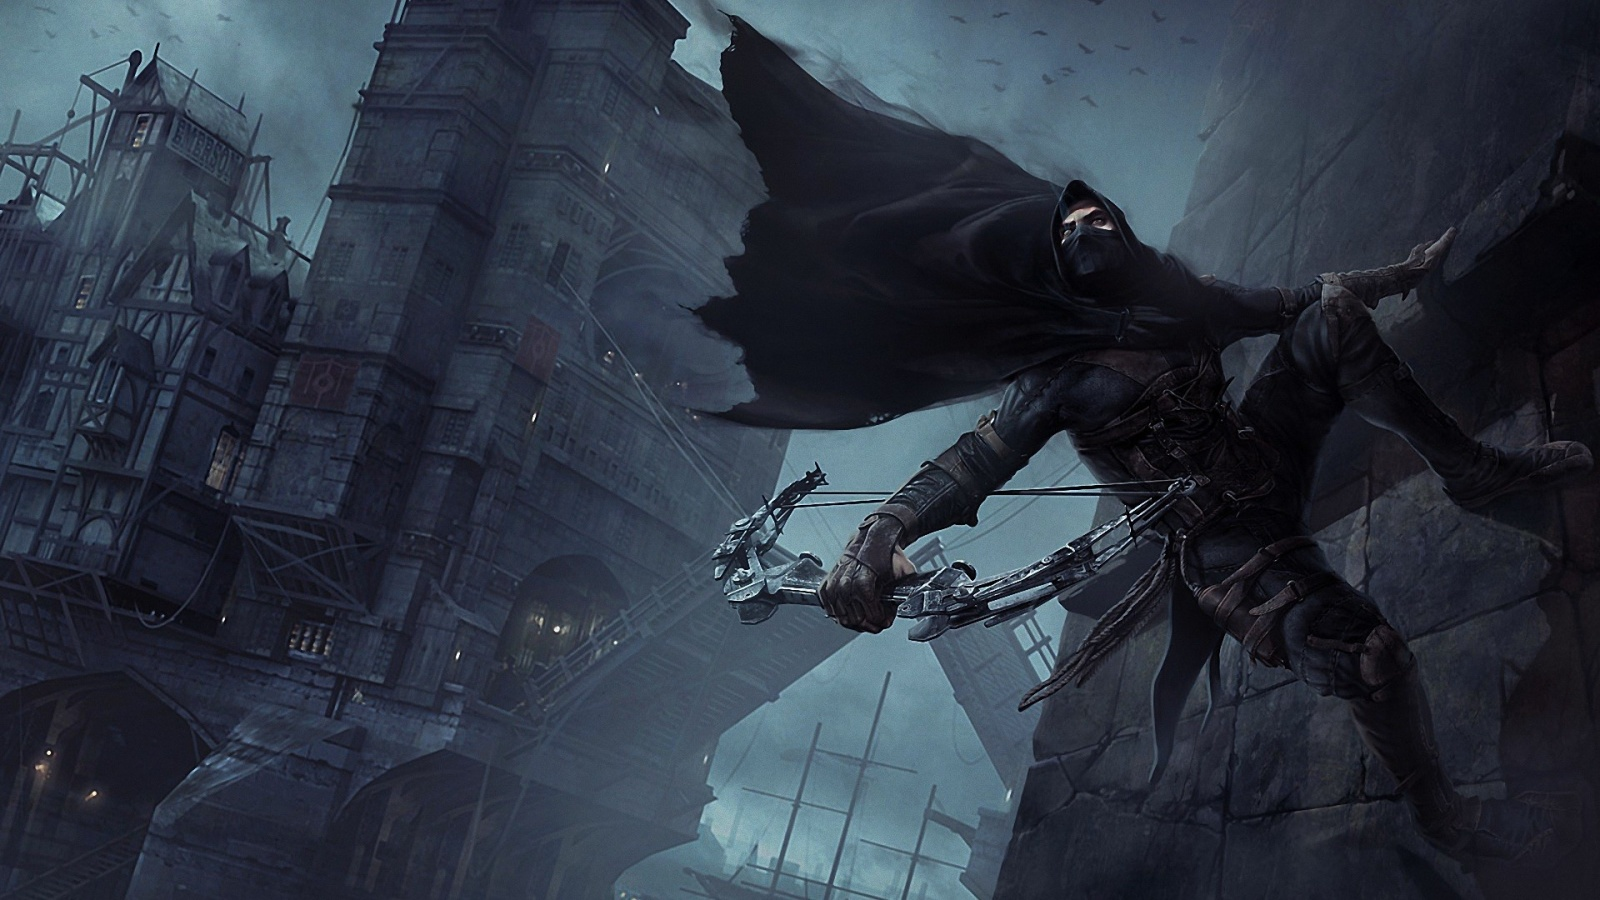 Cool Thief Game Wallpaper